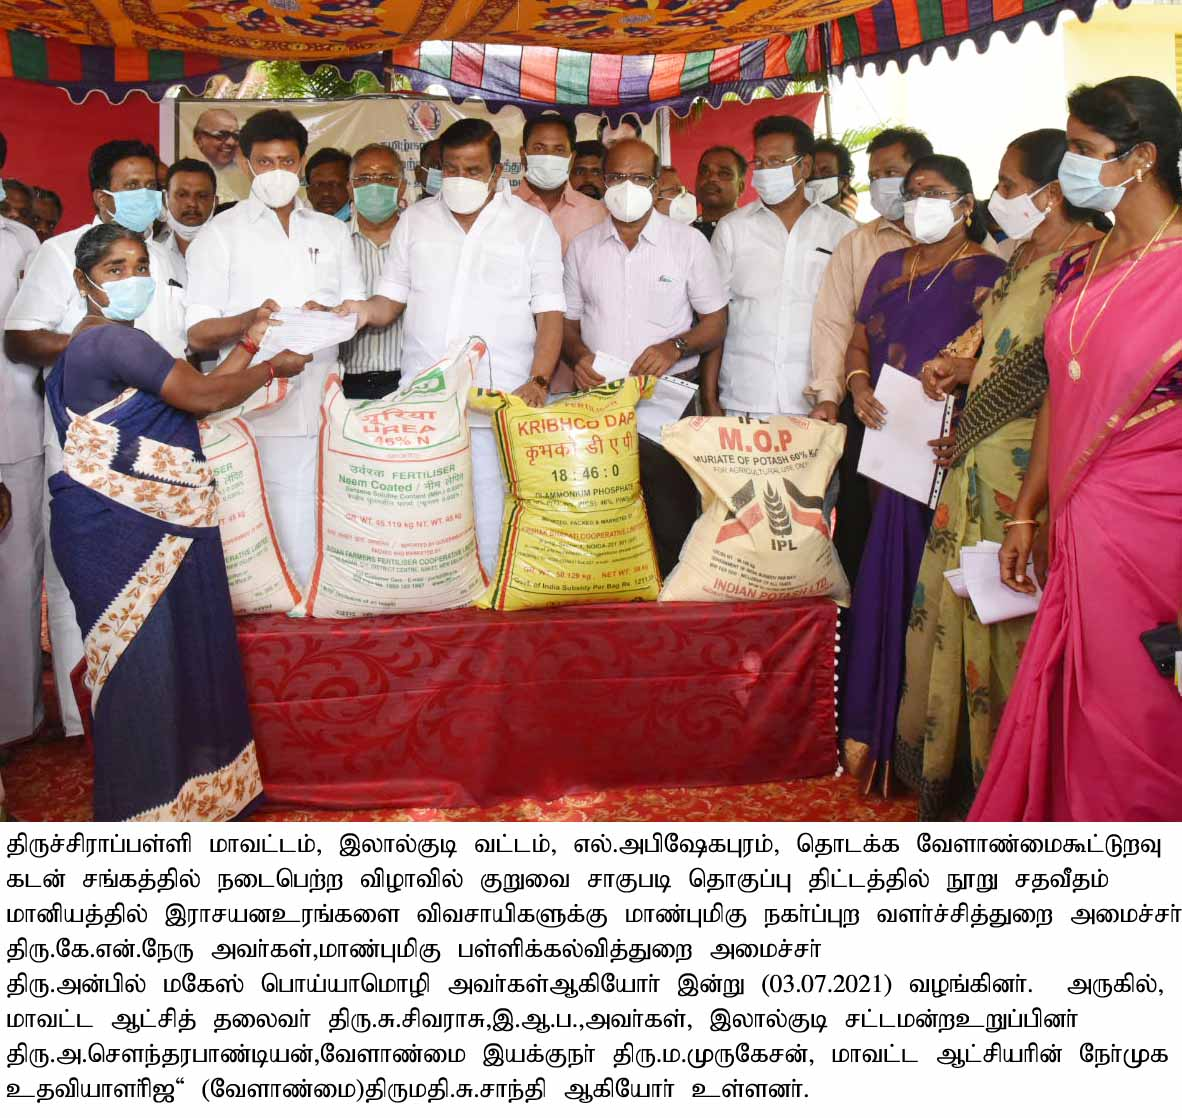 Hon'ble Urban Development Ministers and Hon'ble School Educationals Ministerd distributed Chemical fertilizers for farmers on 03.07.2021